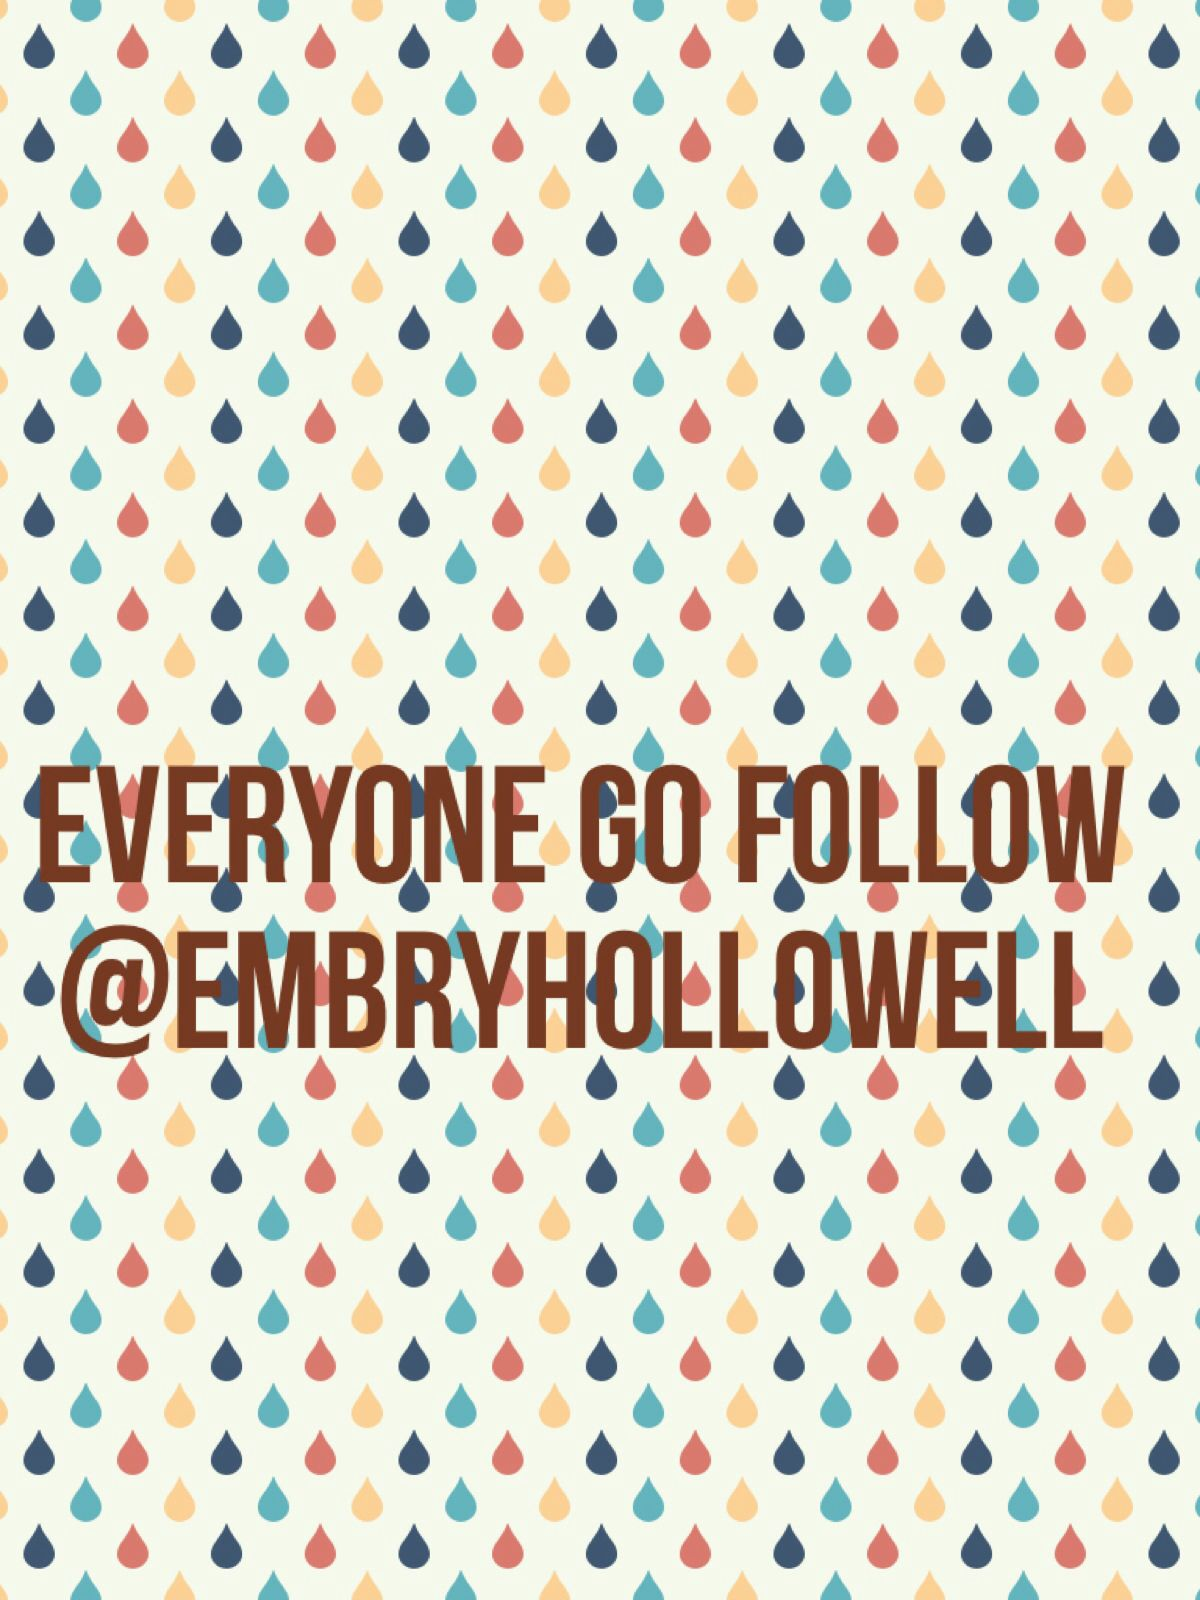 @embryhollowell